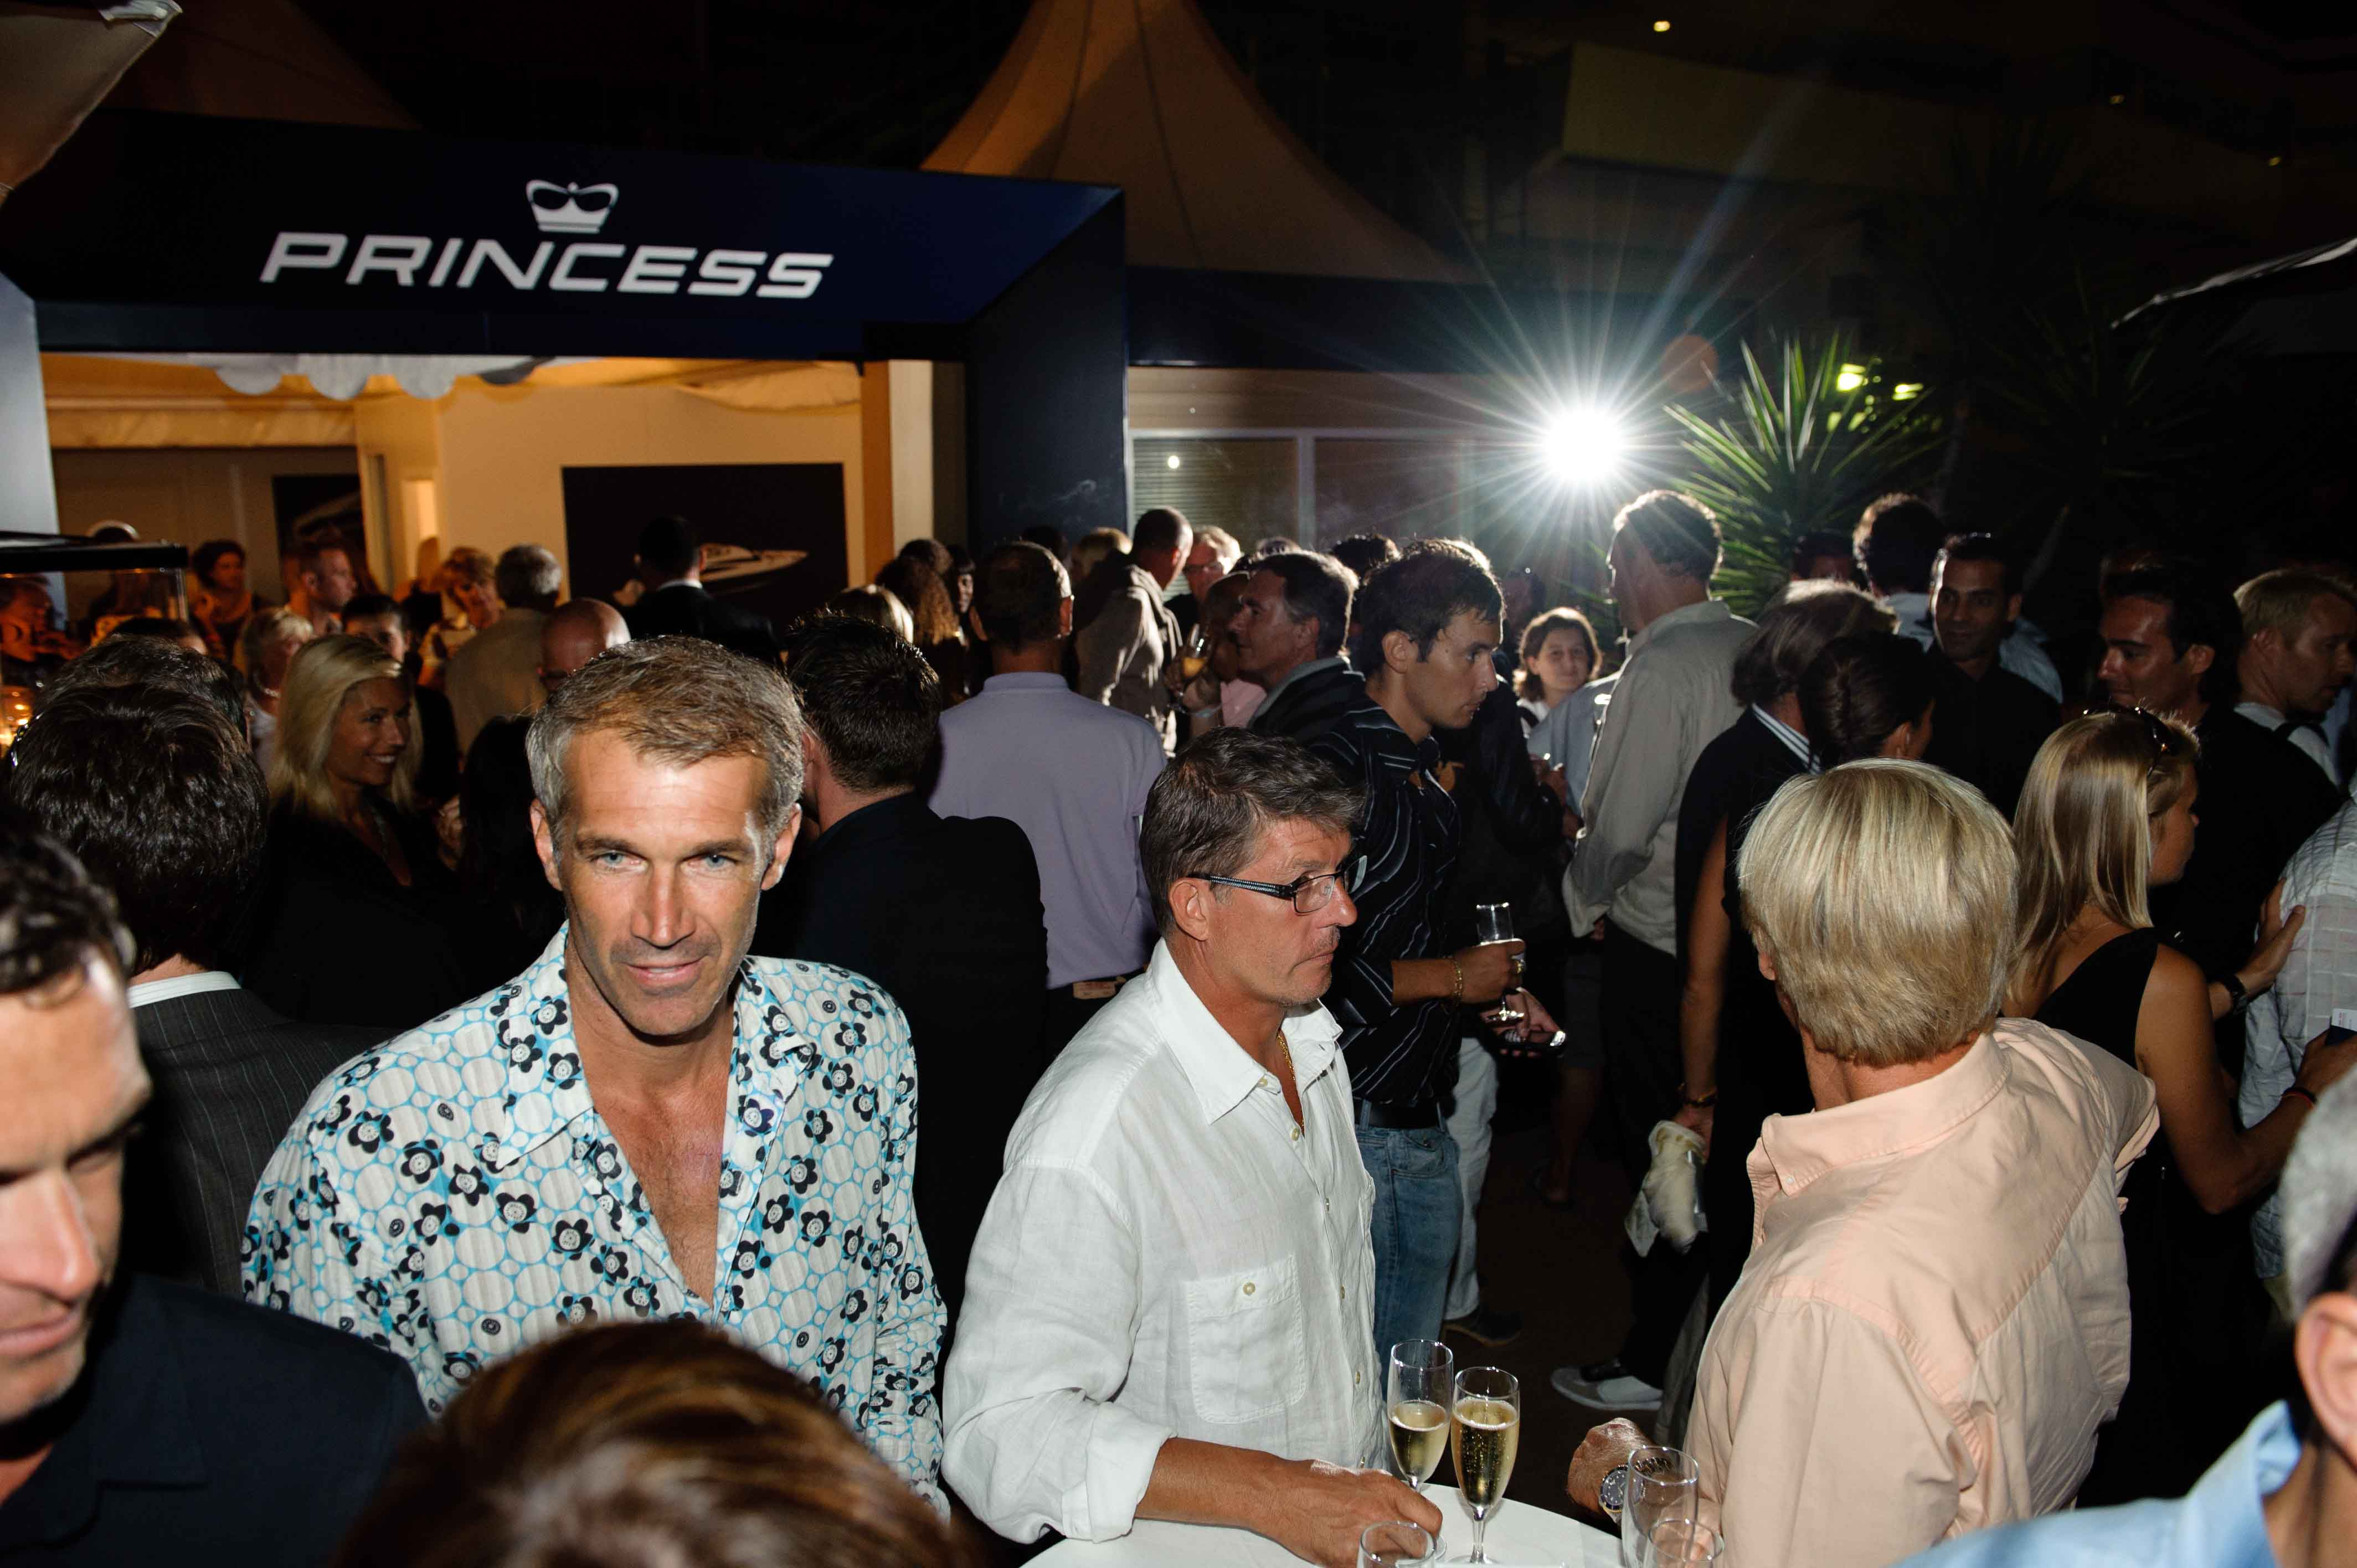 Princess Yachts' Glamour Evening in Cannes · New Princess V52 motor yacht at ...